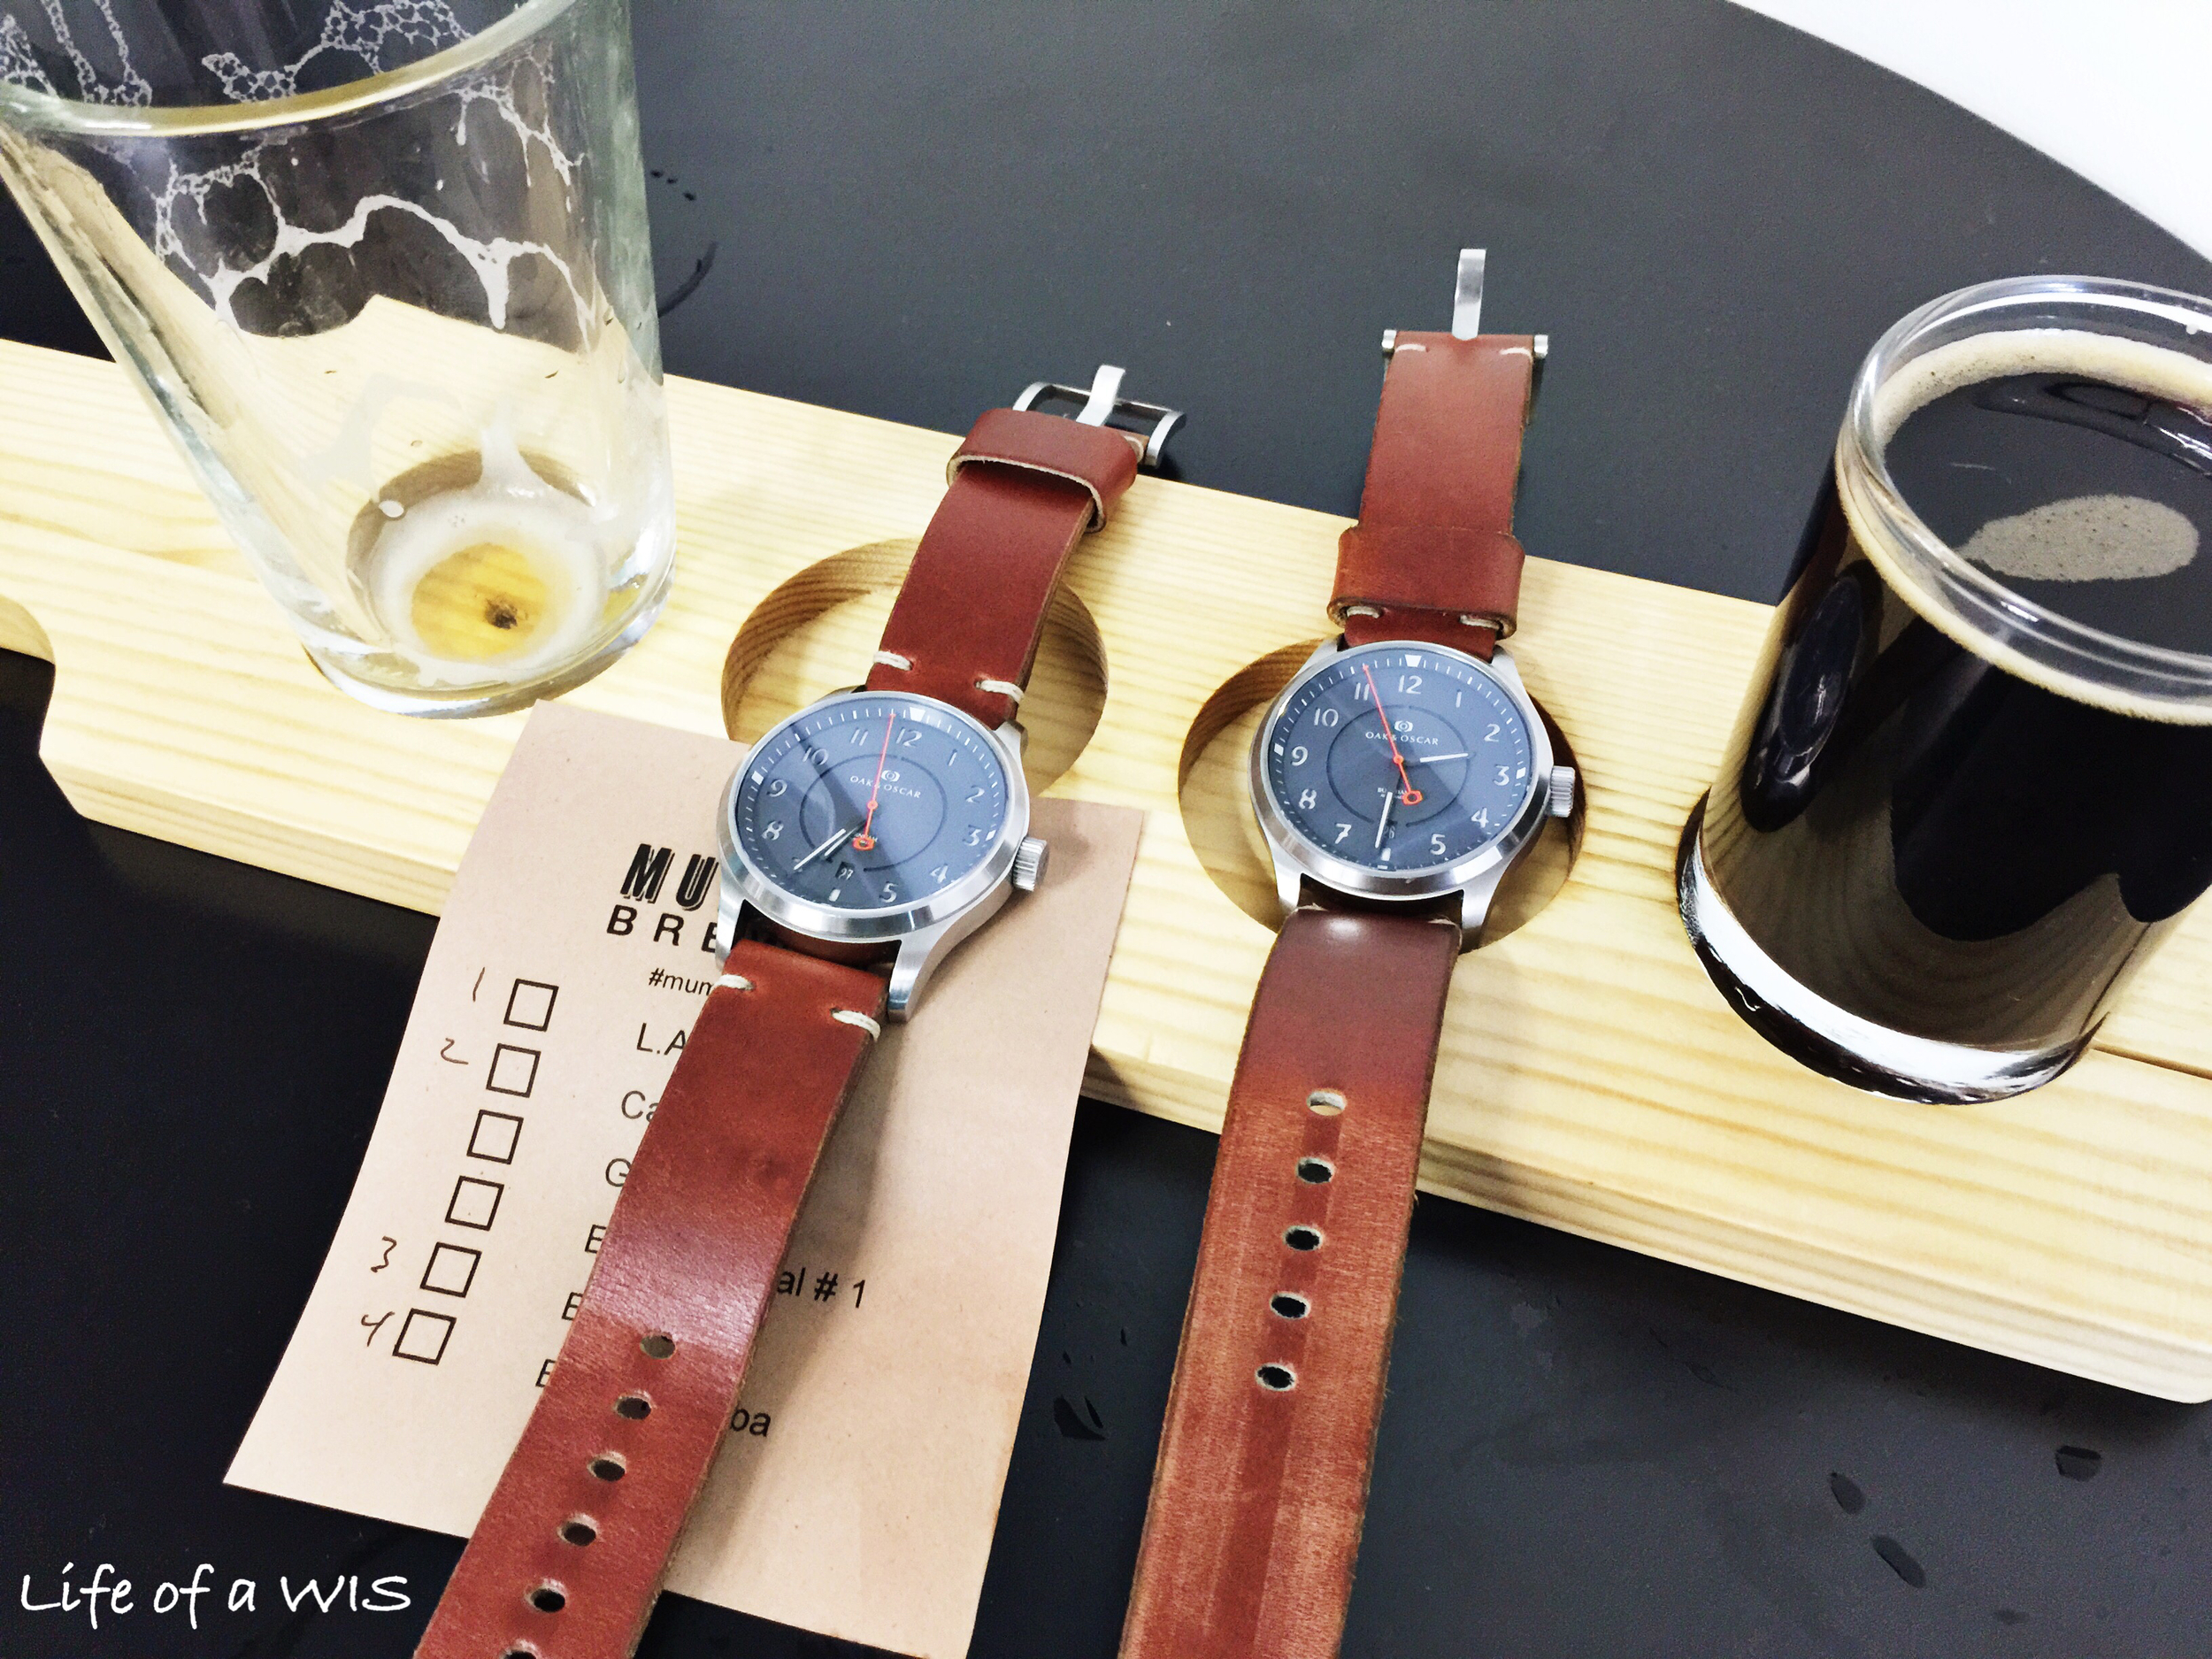 The Horween leather strap is perfect for this watch.